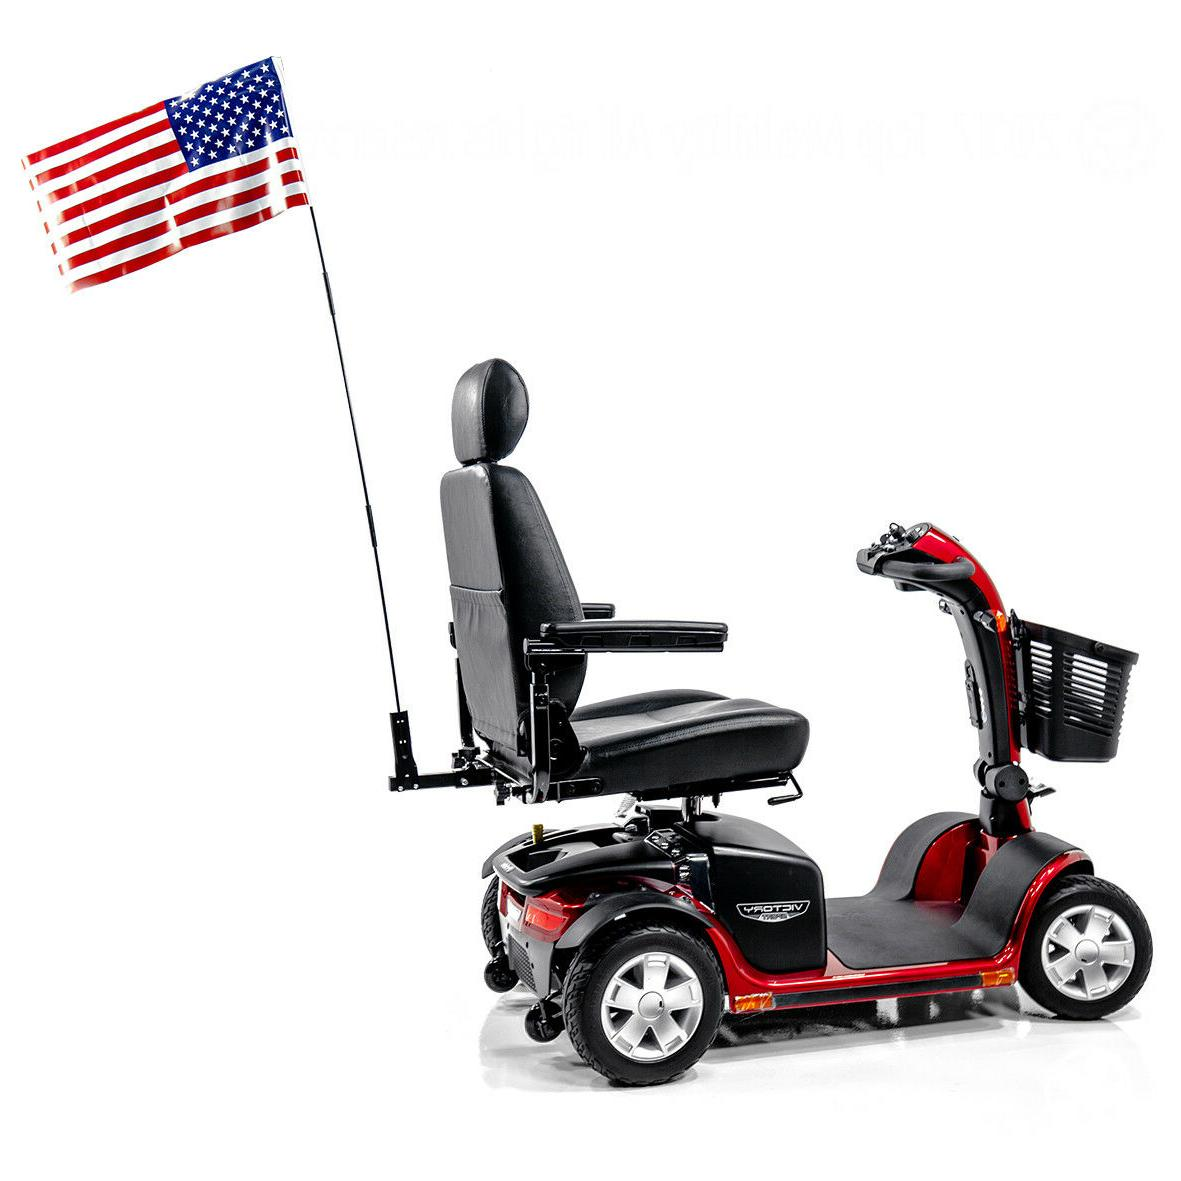 Scooter Patriotic Assembly Mobility Veterans USA